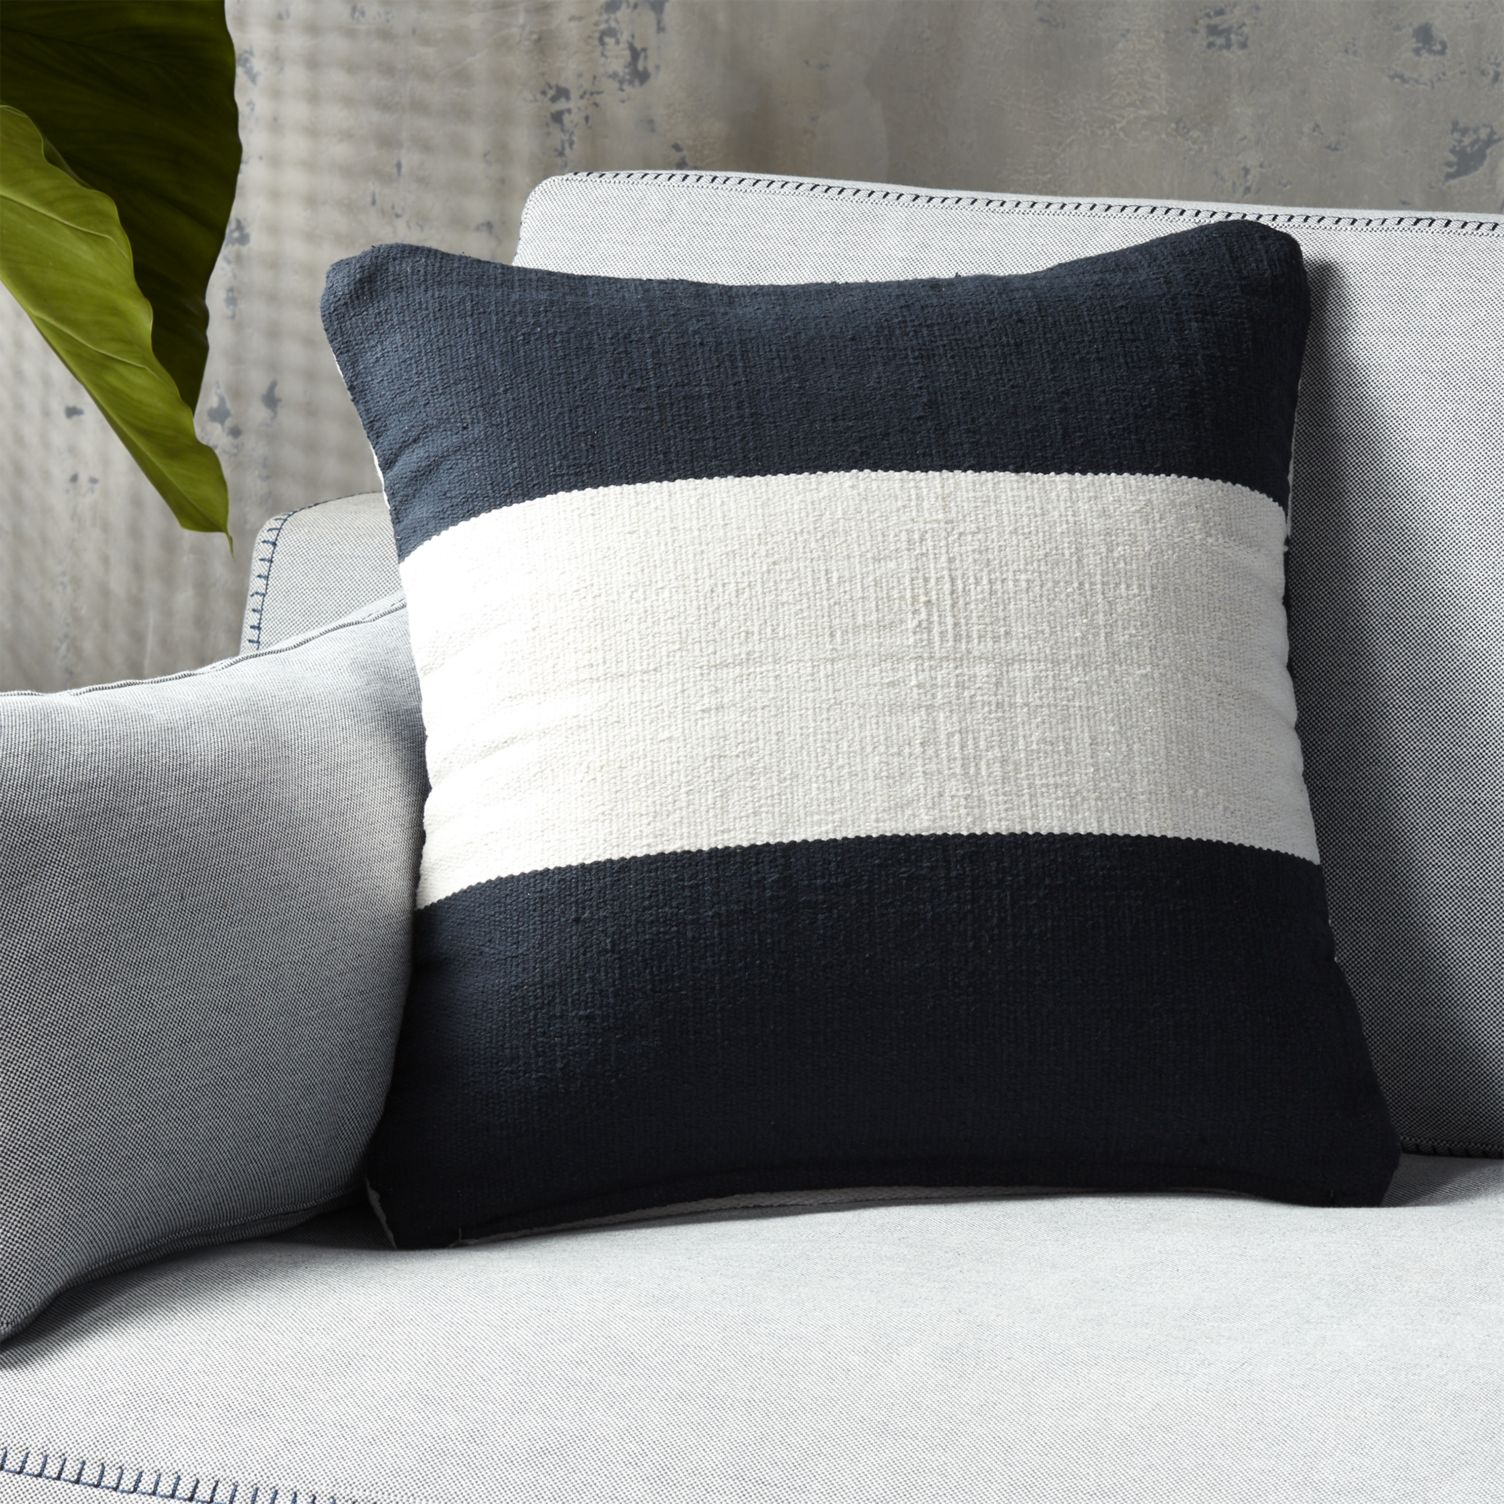 Striped pillow from CB2